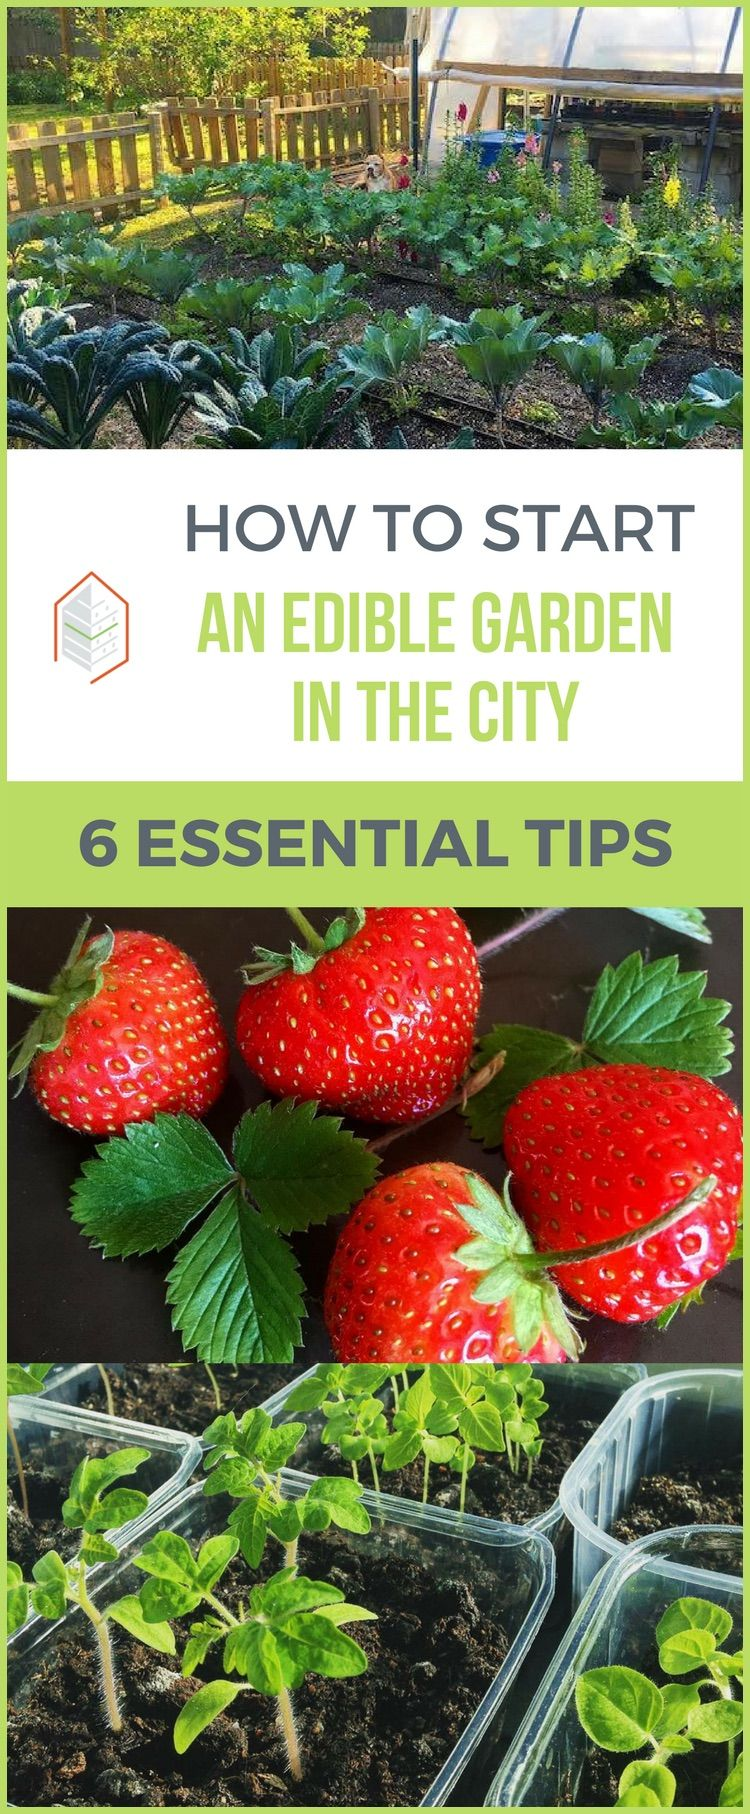 Marvelous Do You Want To Know How To Start An Edible Garden? Hereu0027s How. Learn